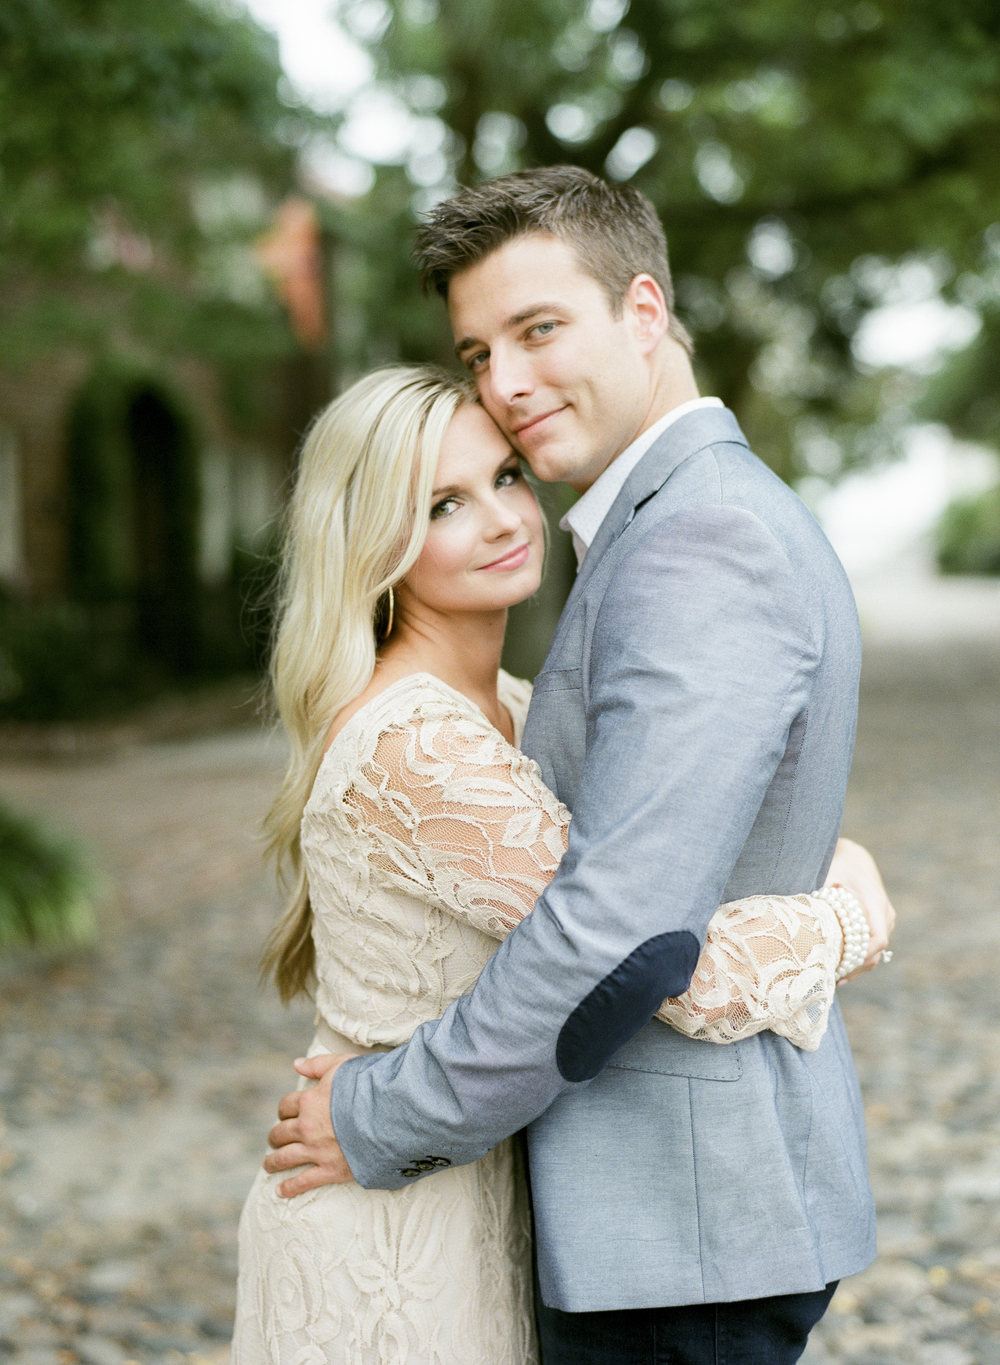 charleston-engagement-session-lauren-jonas-photography.jpg